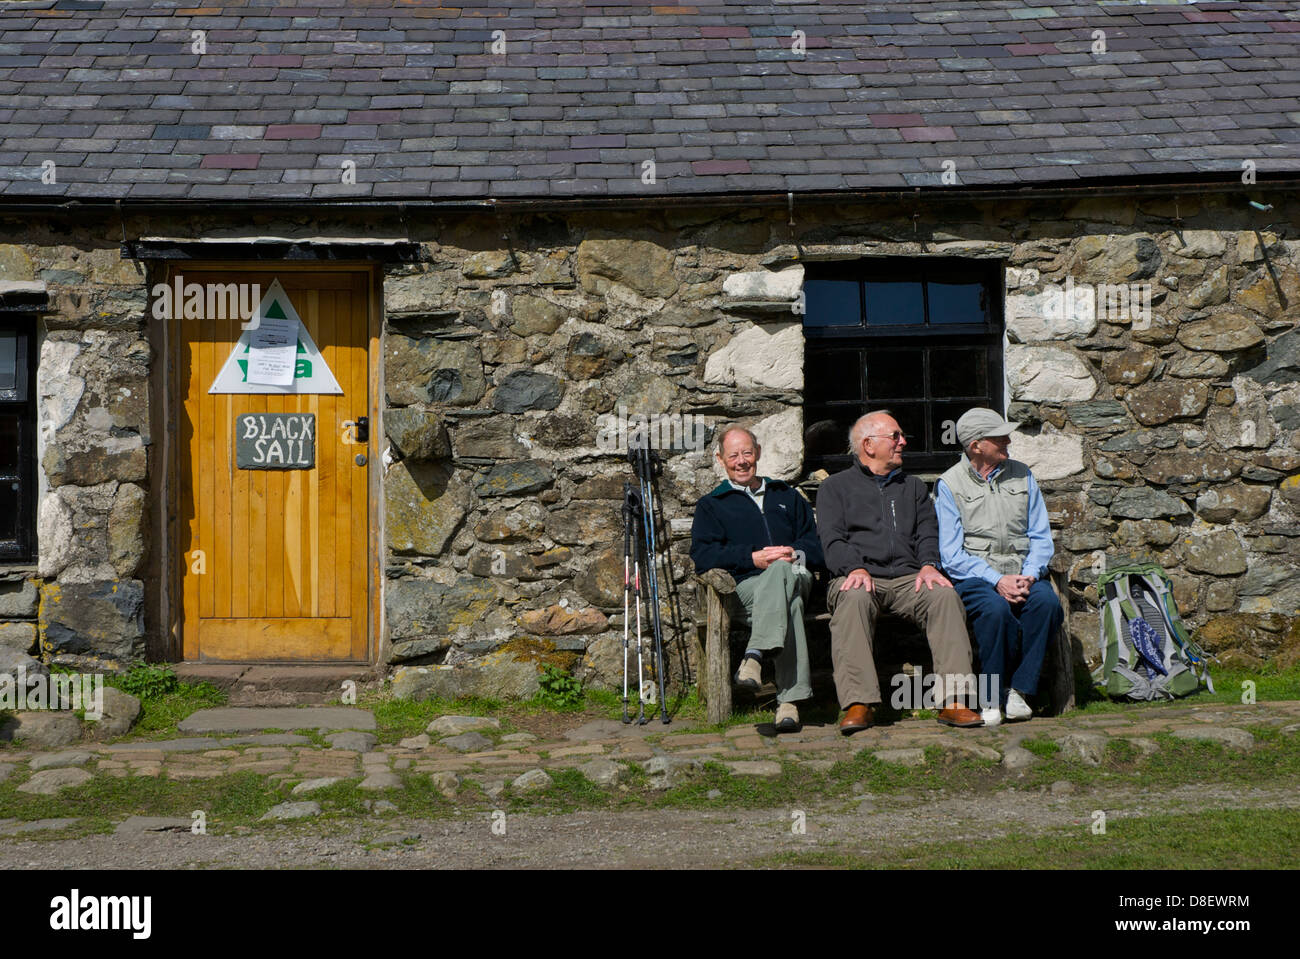 Three senior men sitting outside the Black Sail hut, Ennerdale, Lake District National Park, Cumbria, England UK - Stock Image